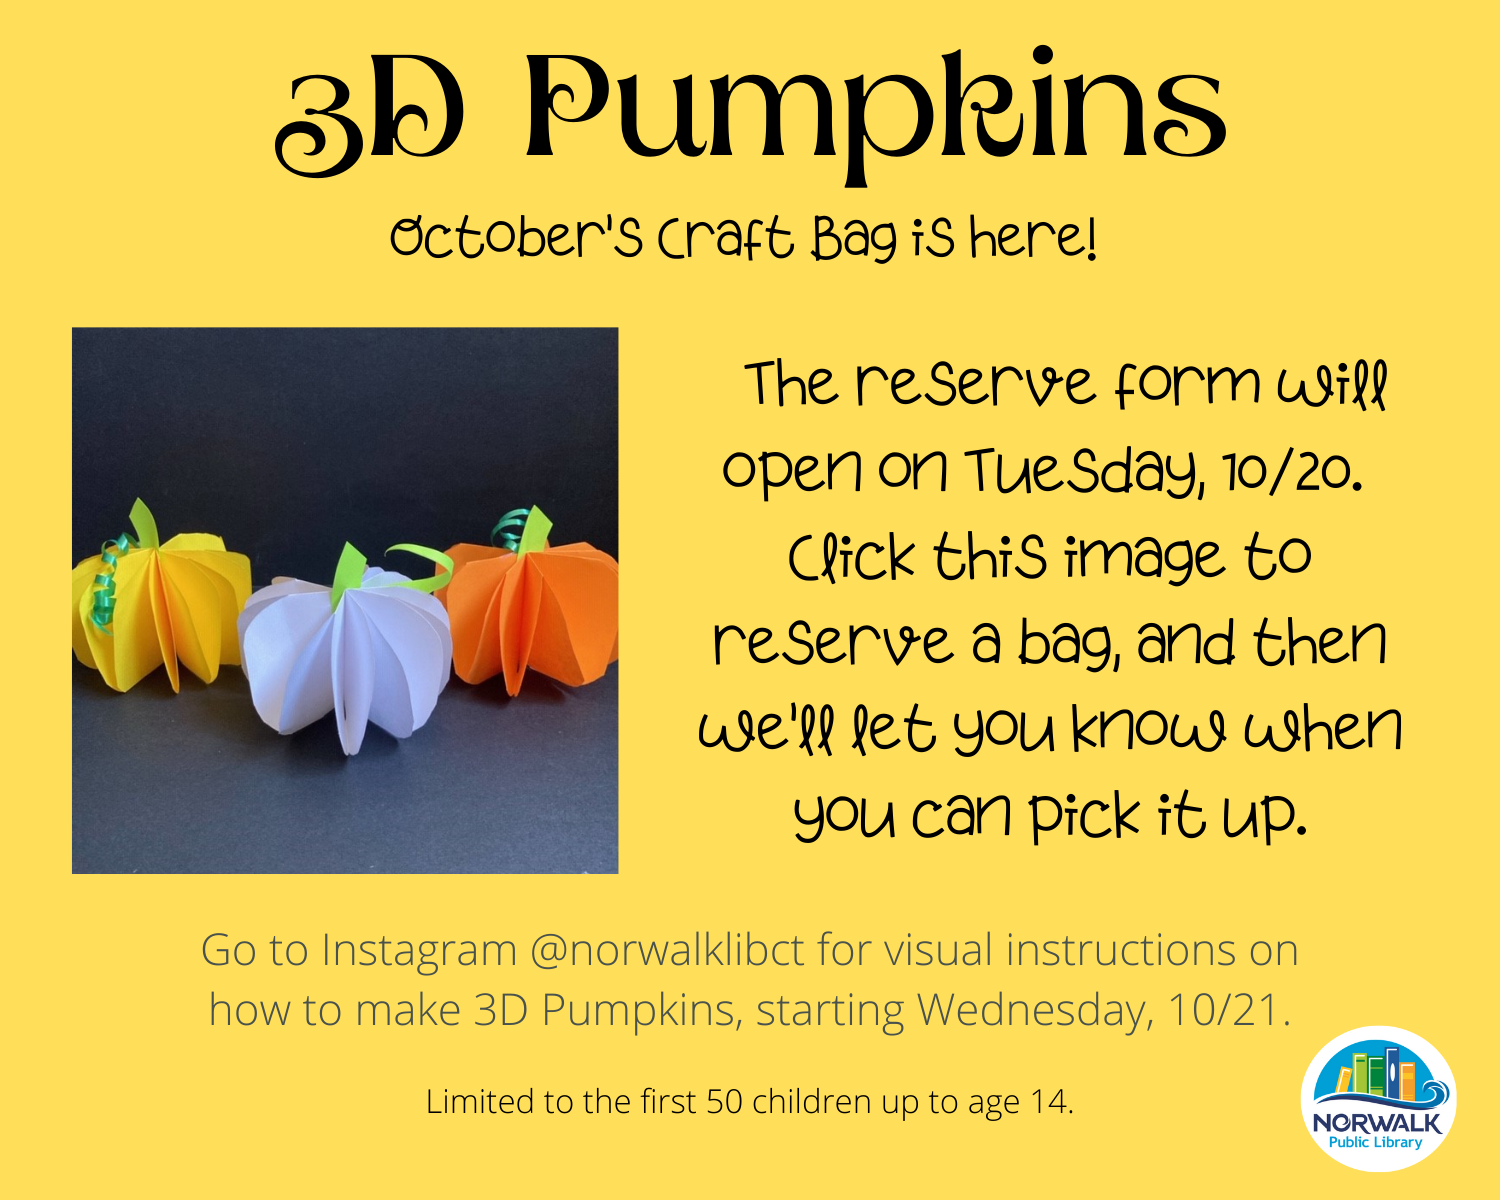 3D Pumpkins Craft Bag